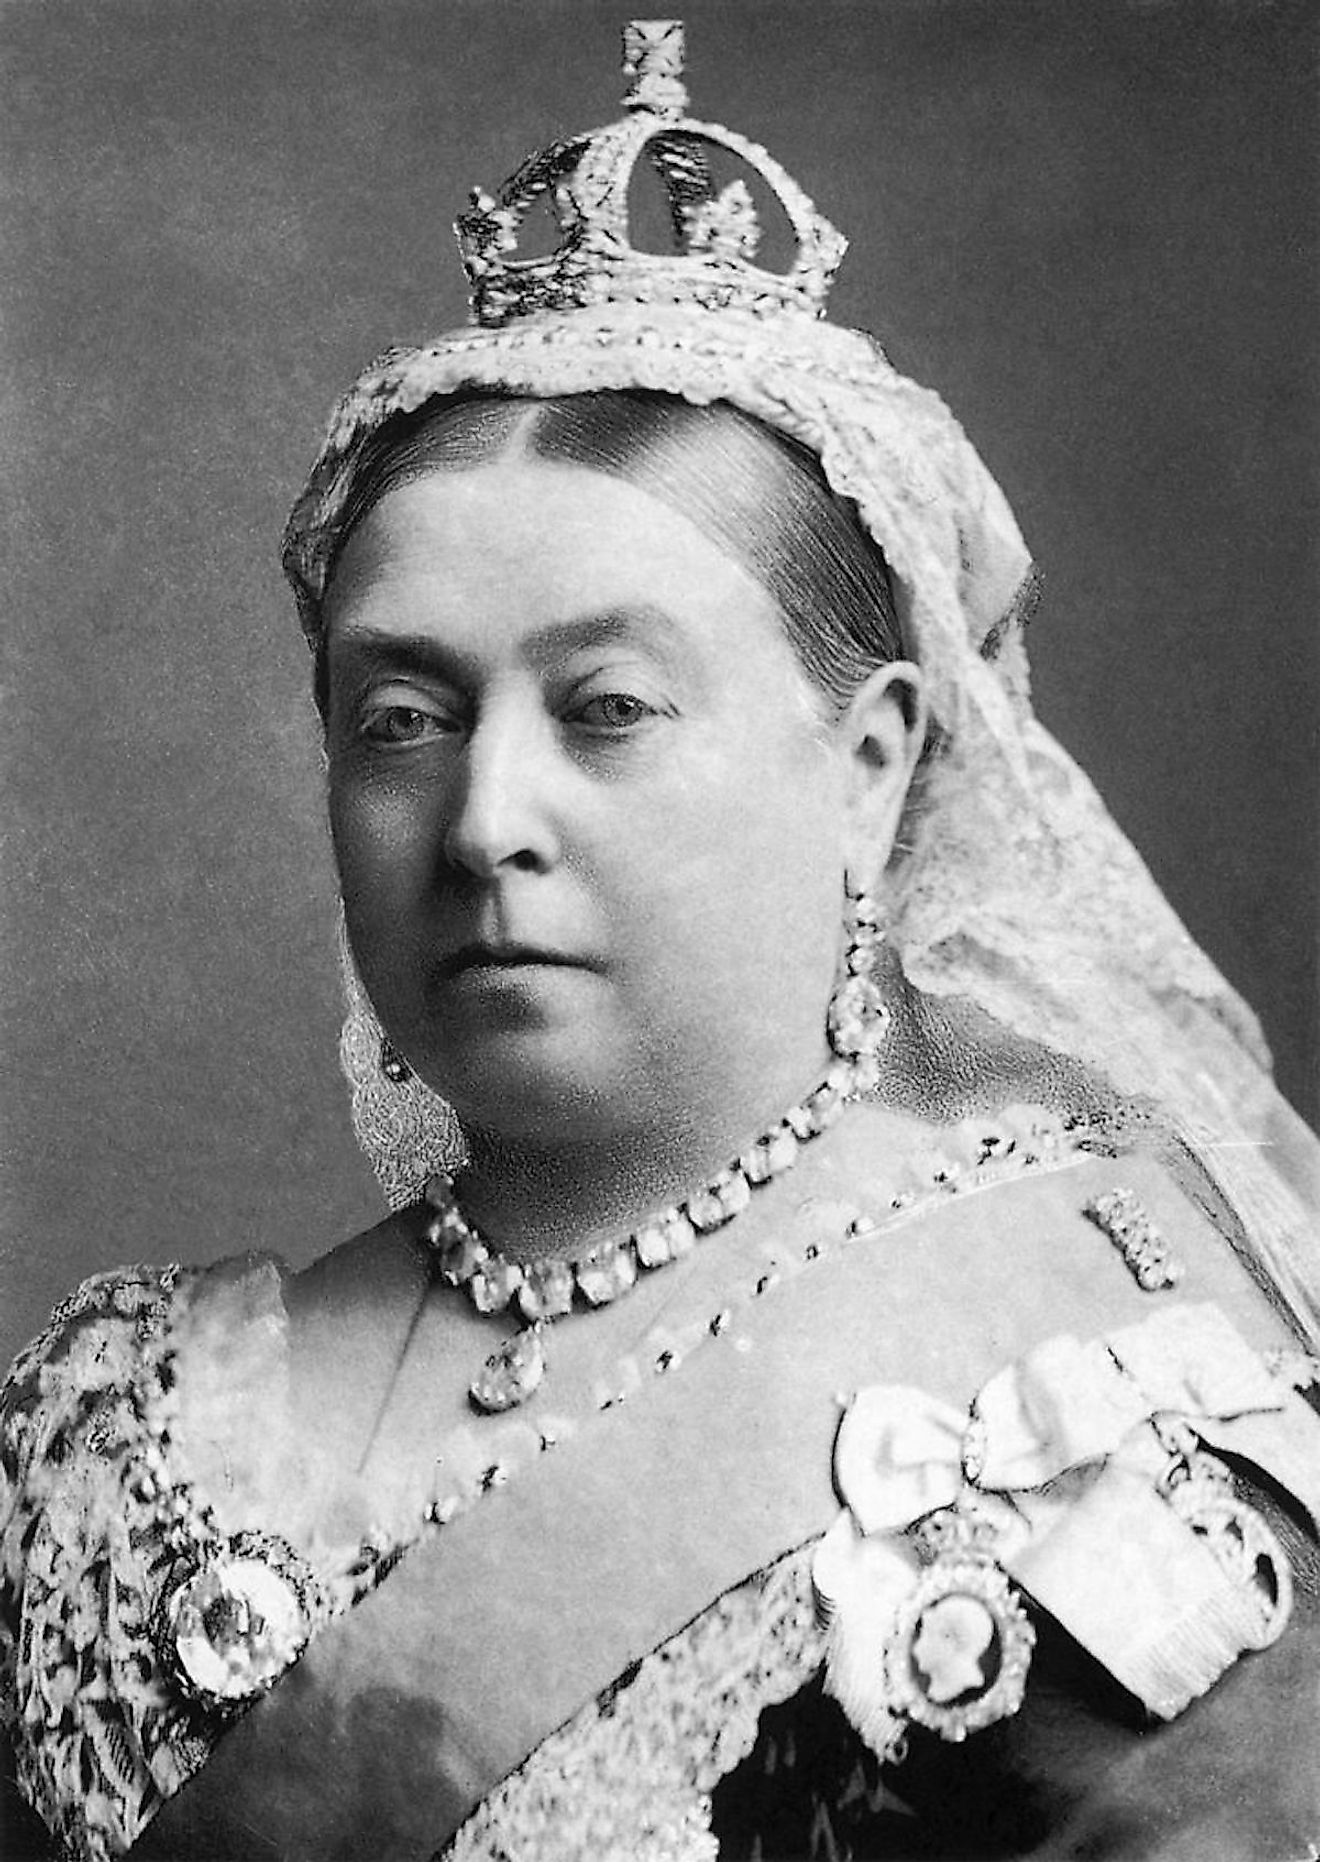 Photograph of Queen Victoria, 1882. Image credit: Alexander Bassano/Public domain